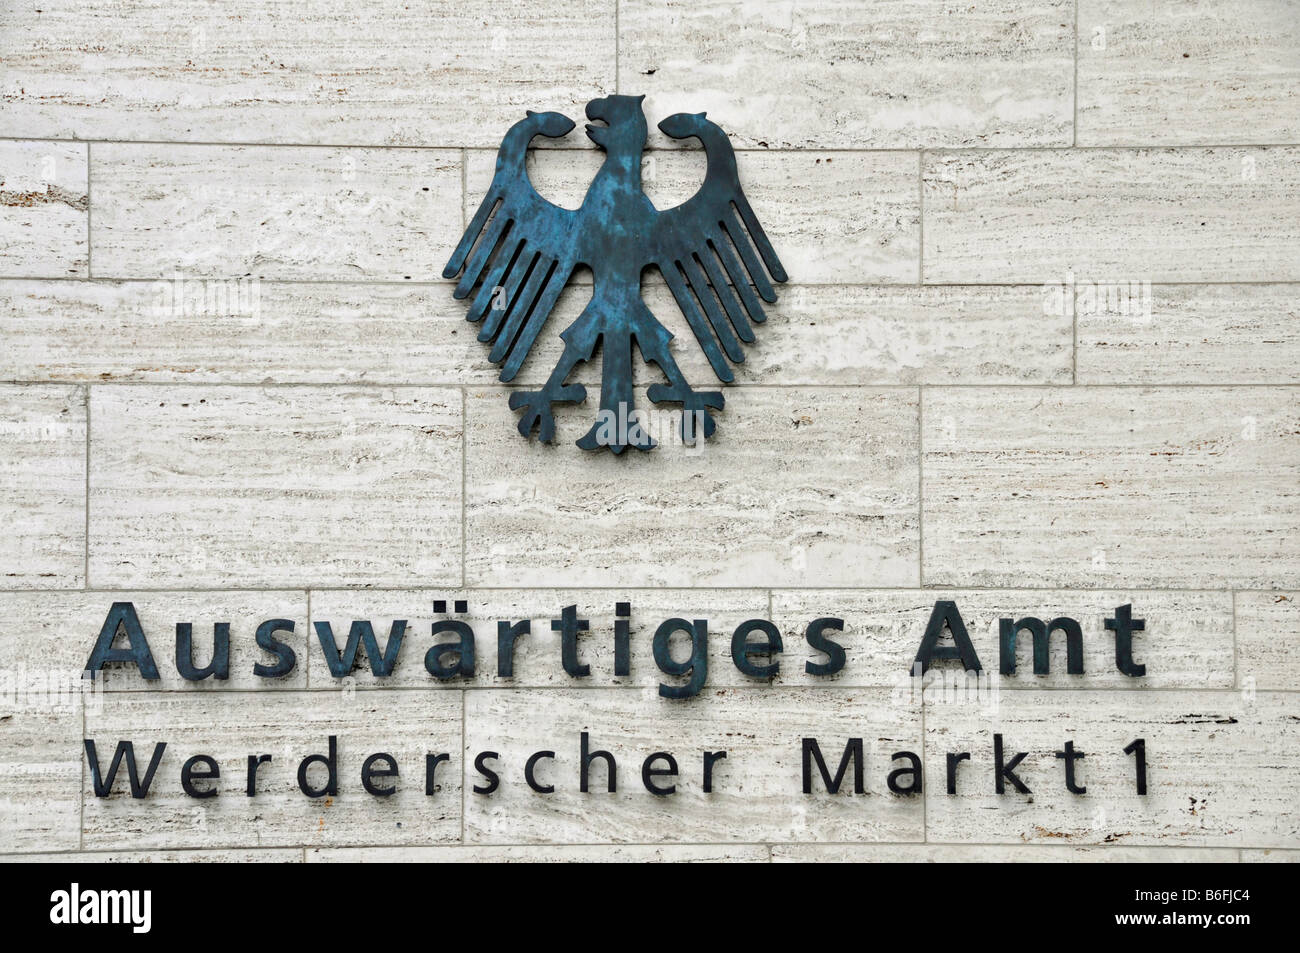 Federal Eagle and text on a sign for the Auswaertiges Amt or Department for Foreign Affairs at the Aussenministerium - Stock Image